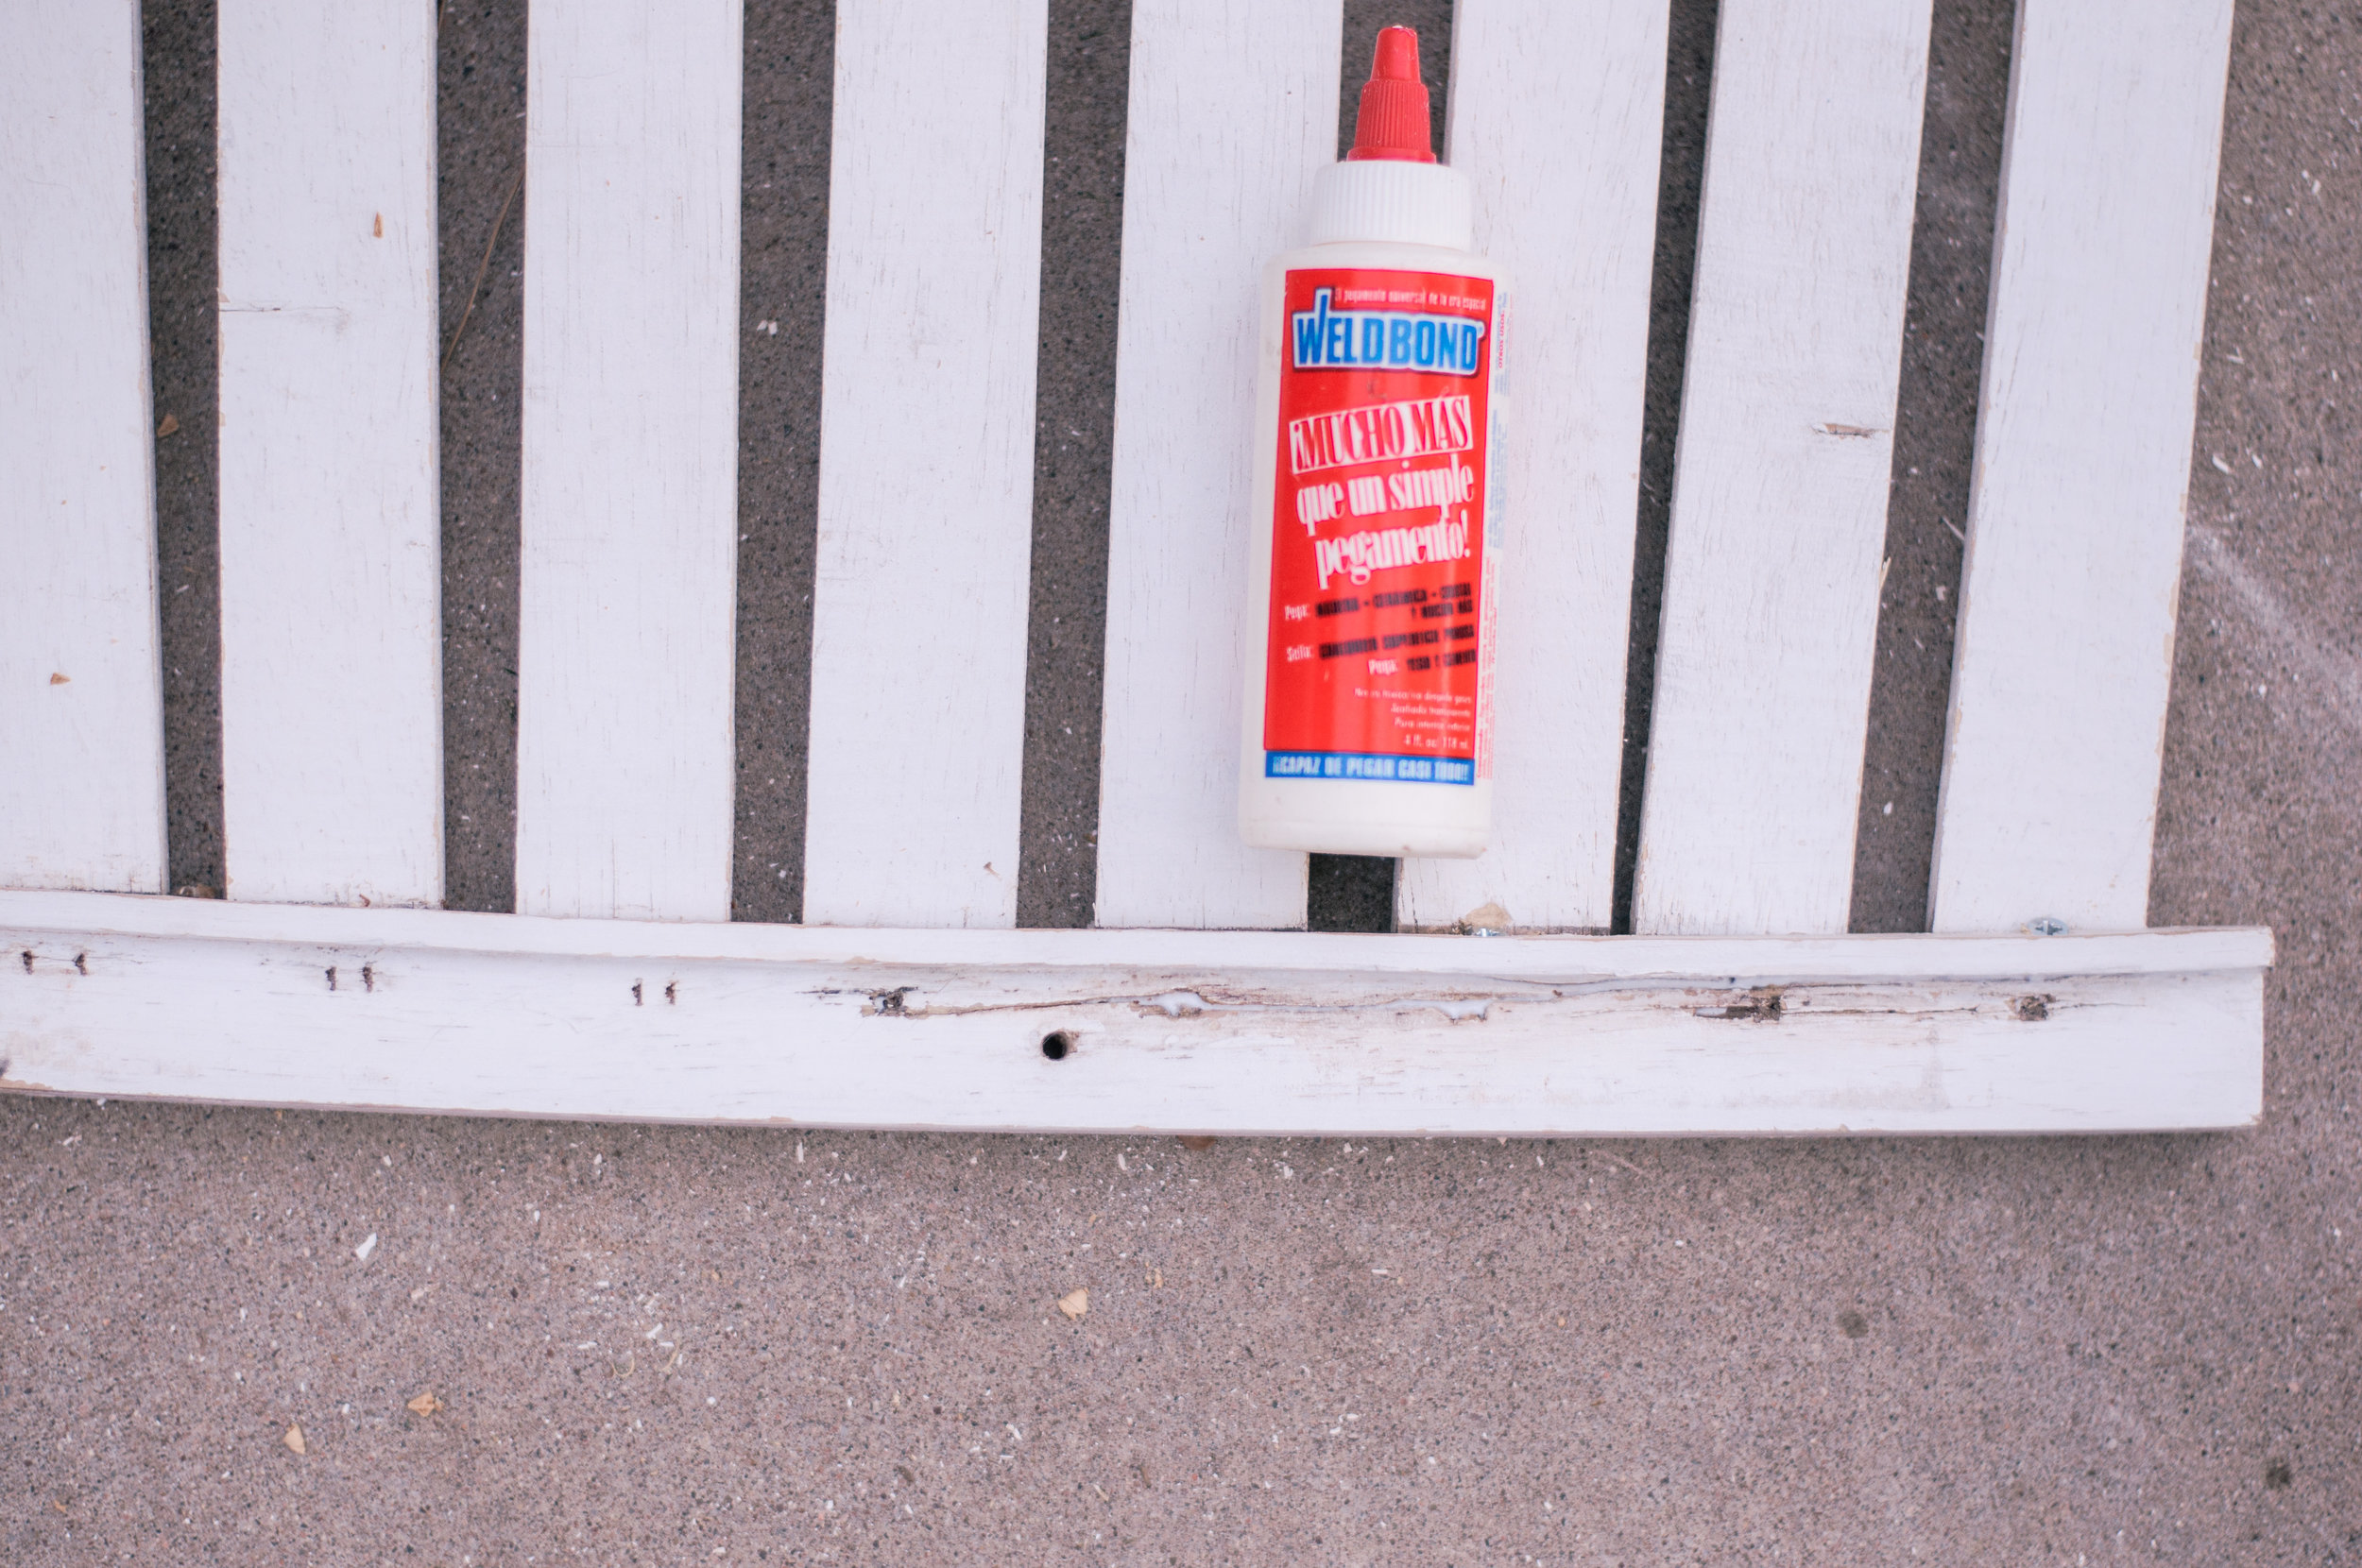 Weldbond All-Purpose Glue for Fixing Cracked Wood